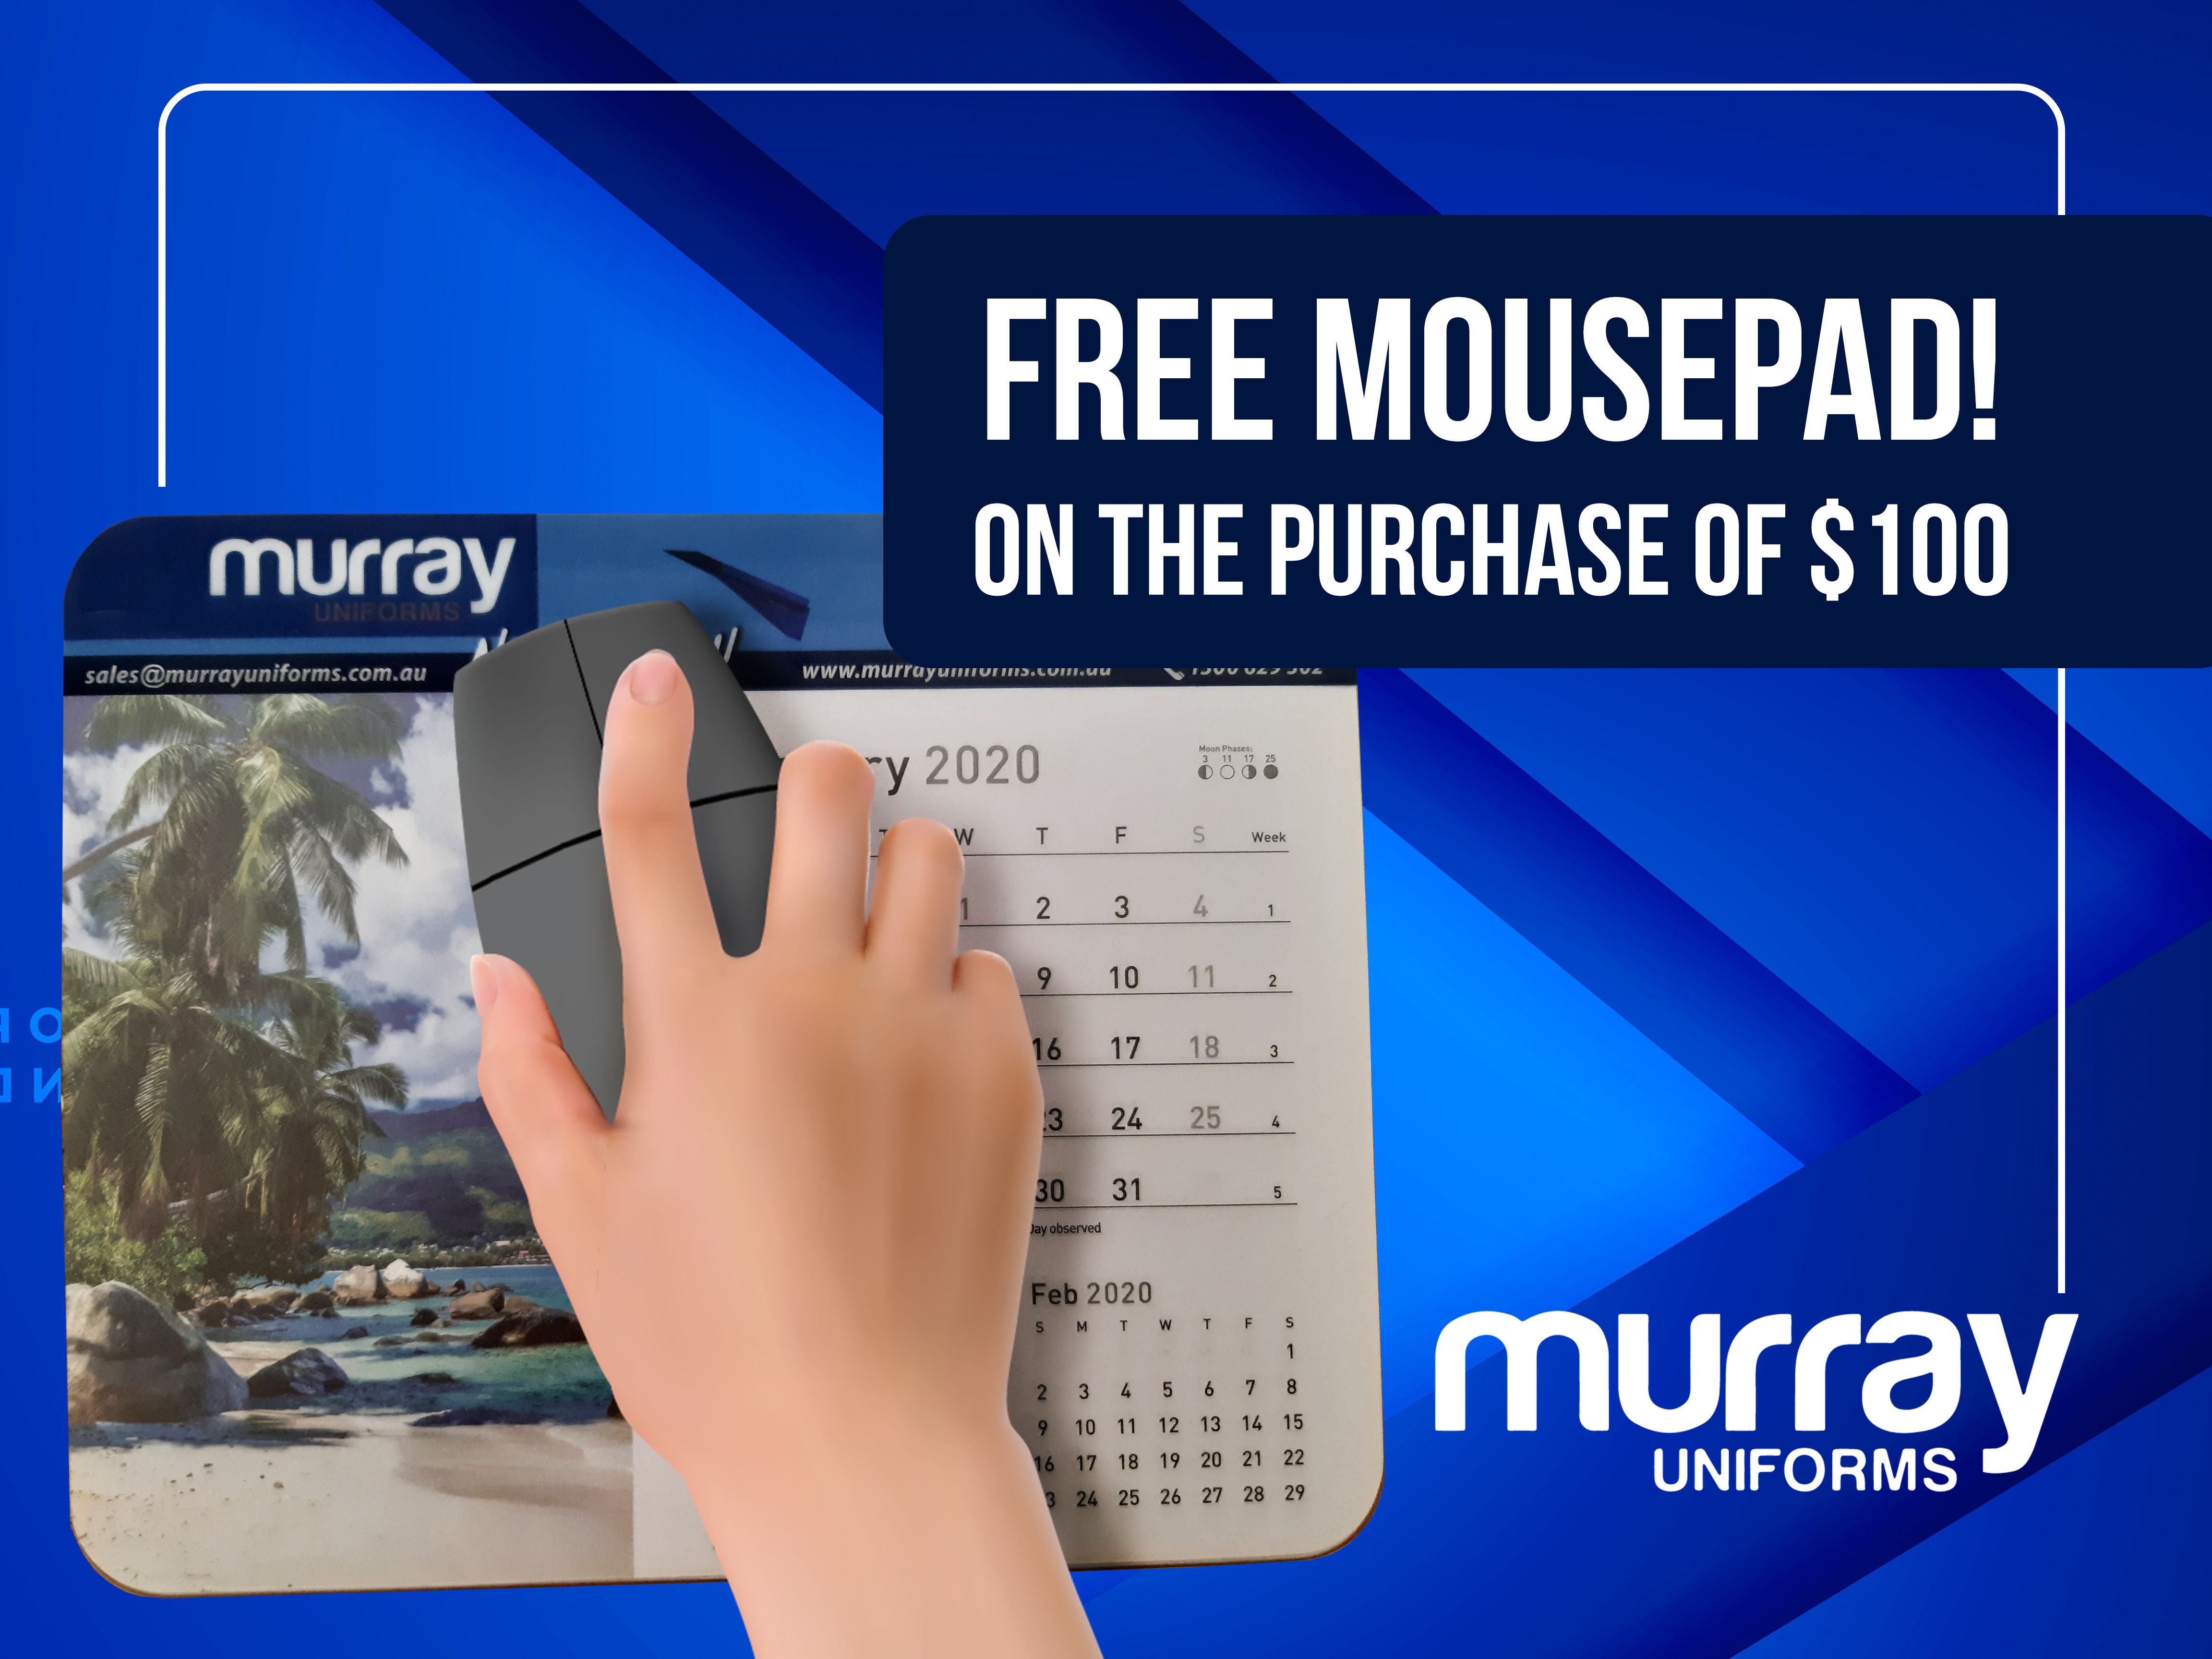 Any order over 100 we will give away free Mousepad